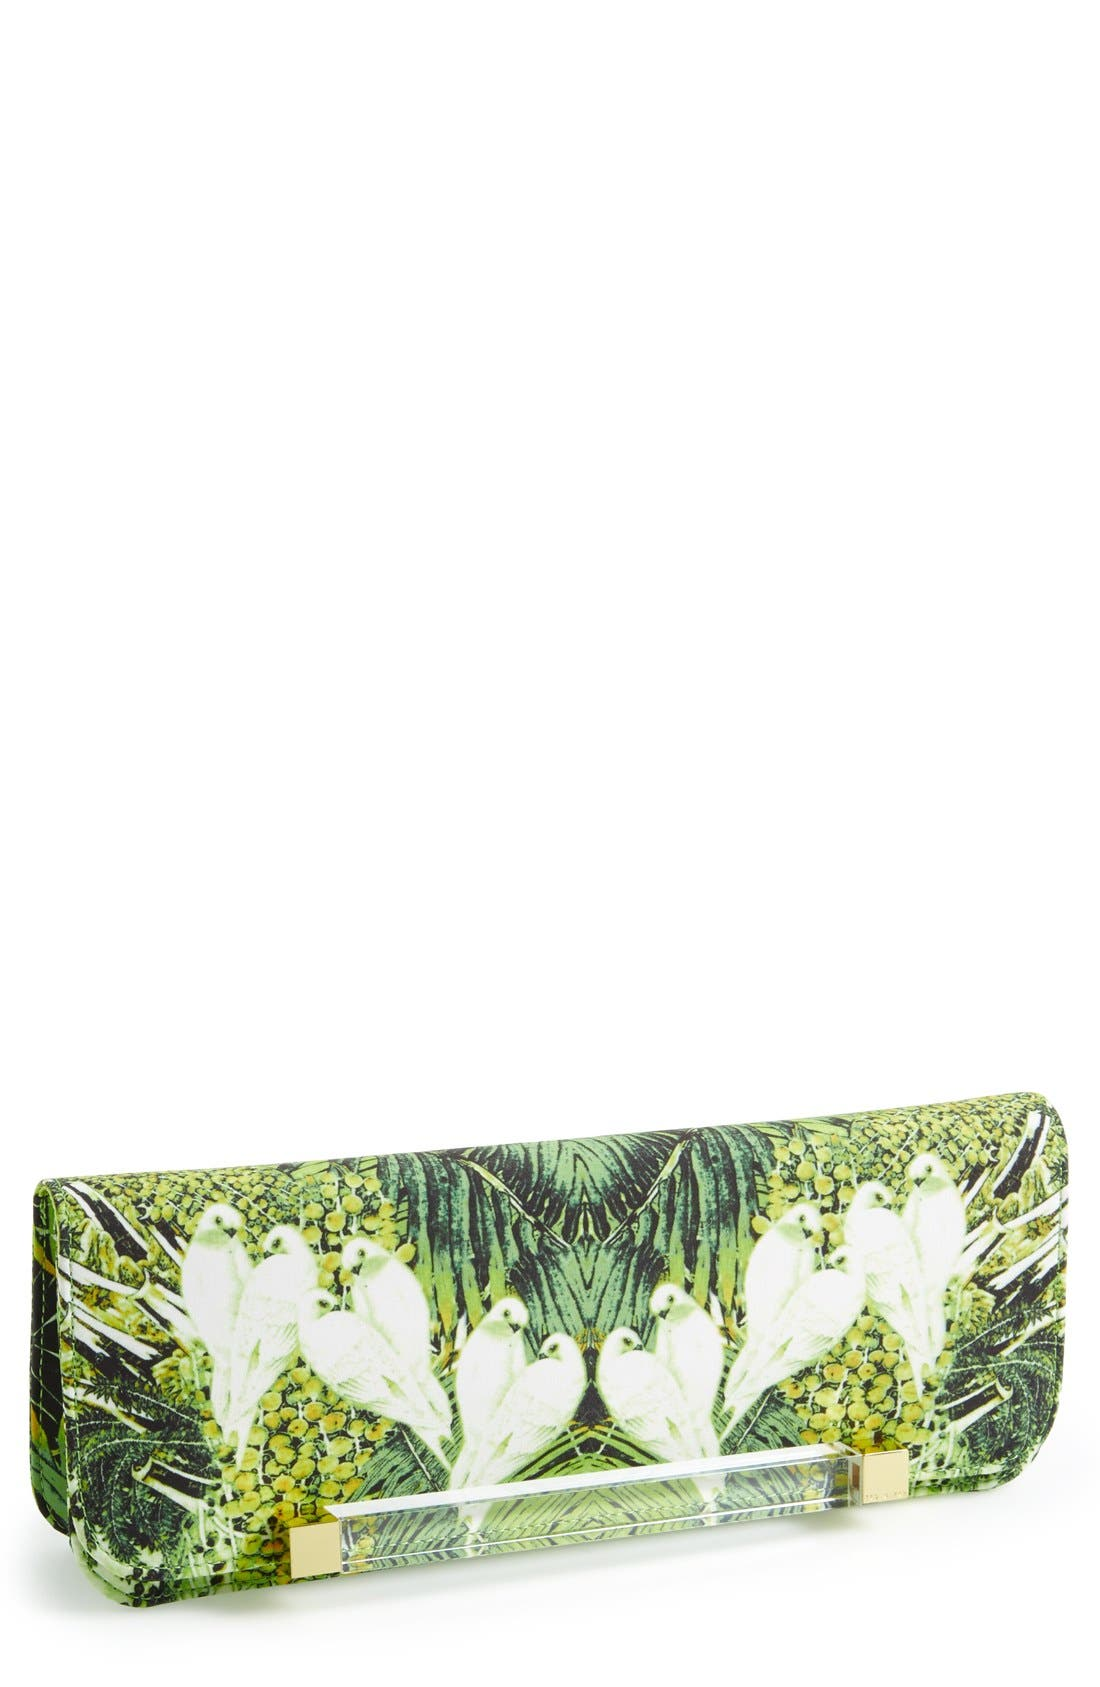 TED BAKER LONDON 'Tropical Dove' Clutch, Main, color, 300